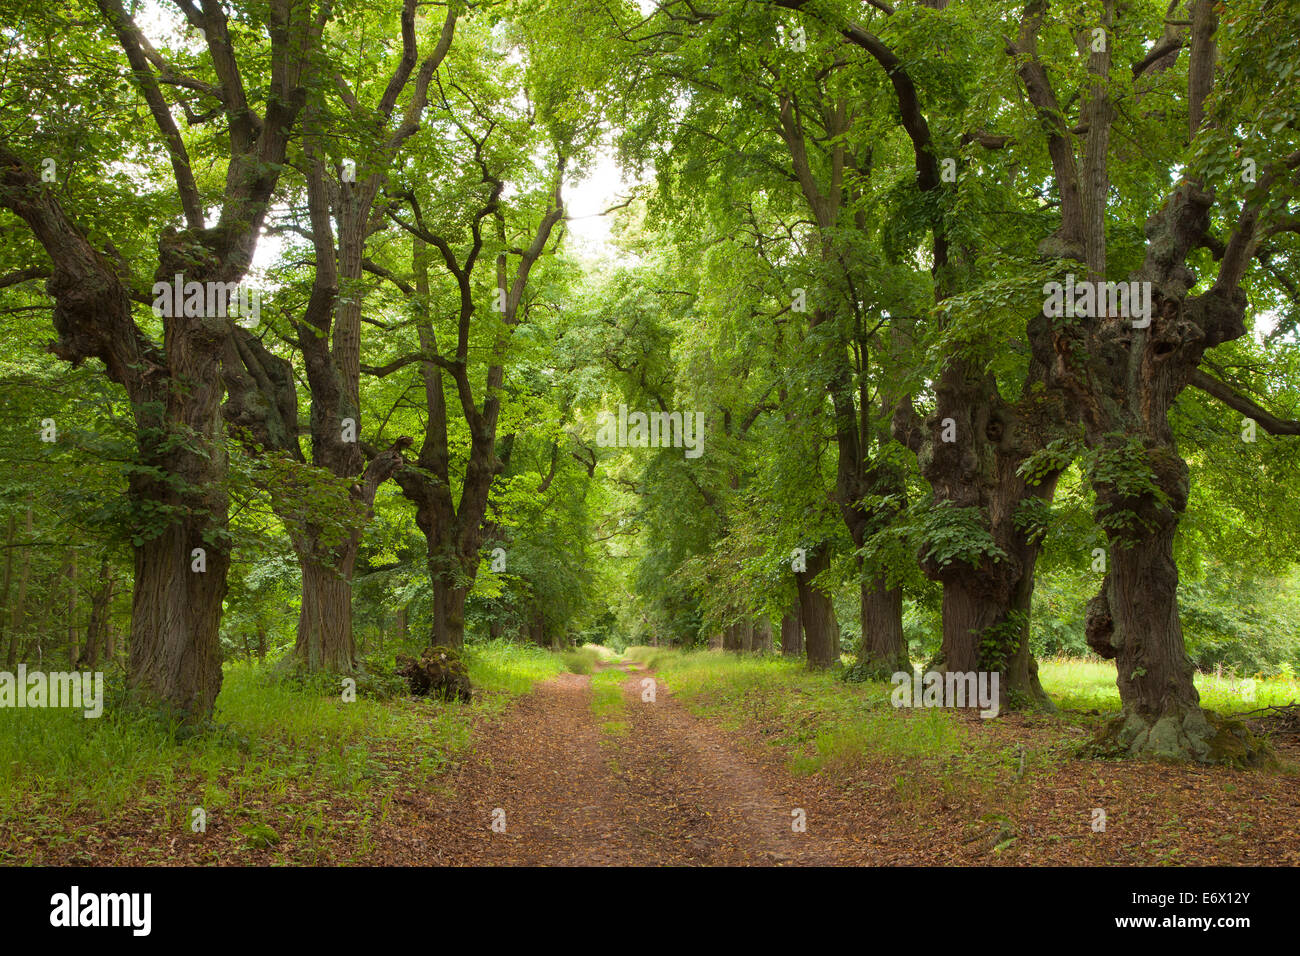 Alley of lime trees, Thuringia, Germany - Stock Image